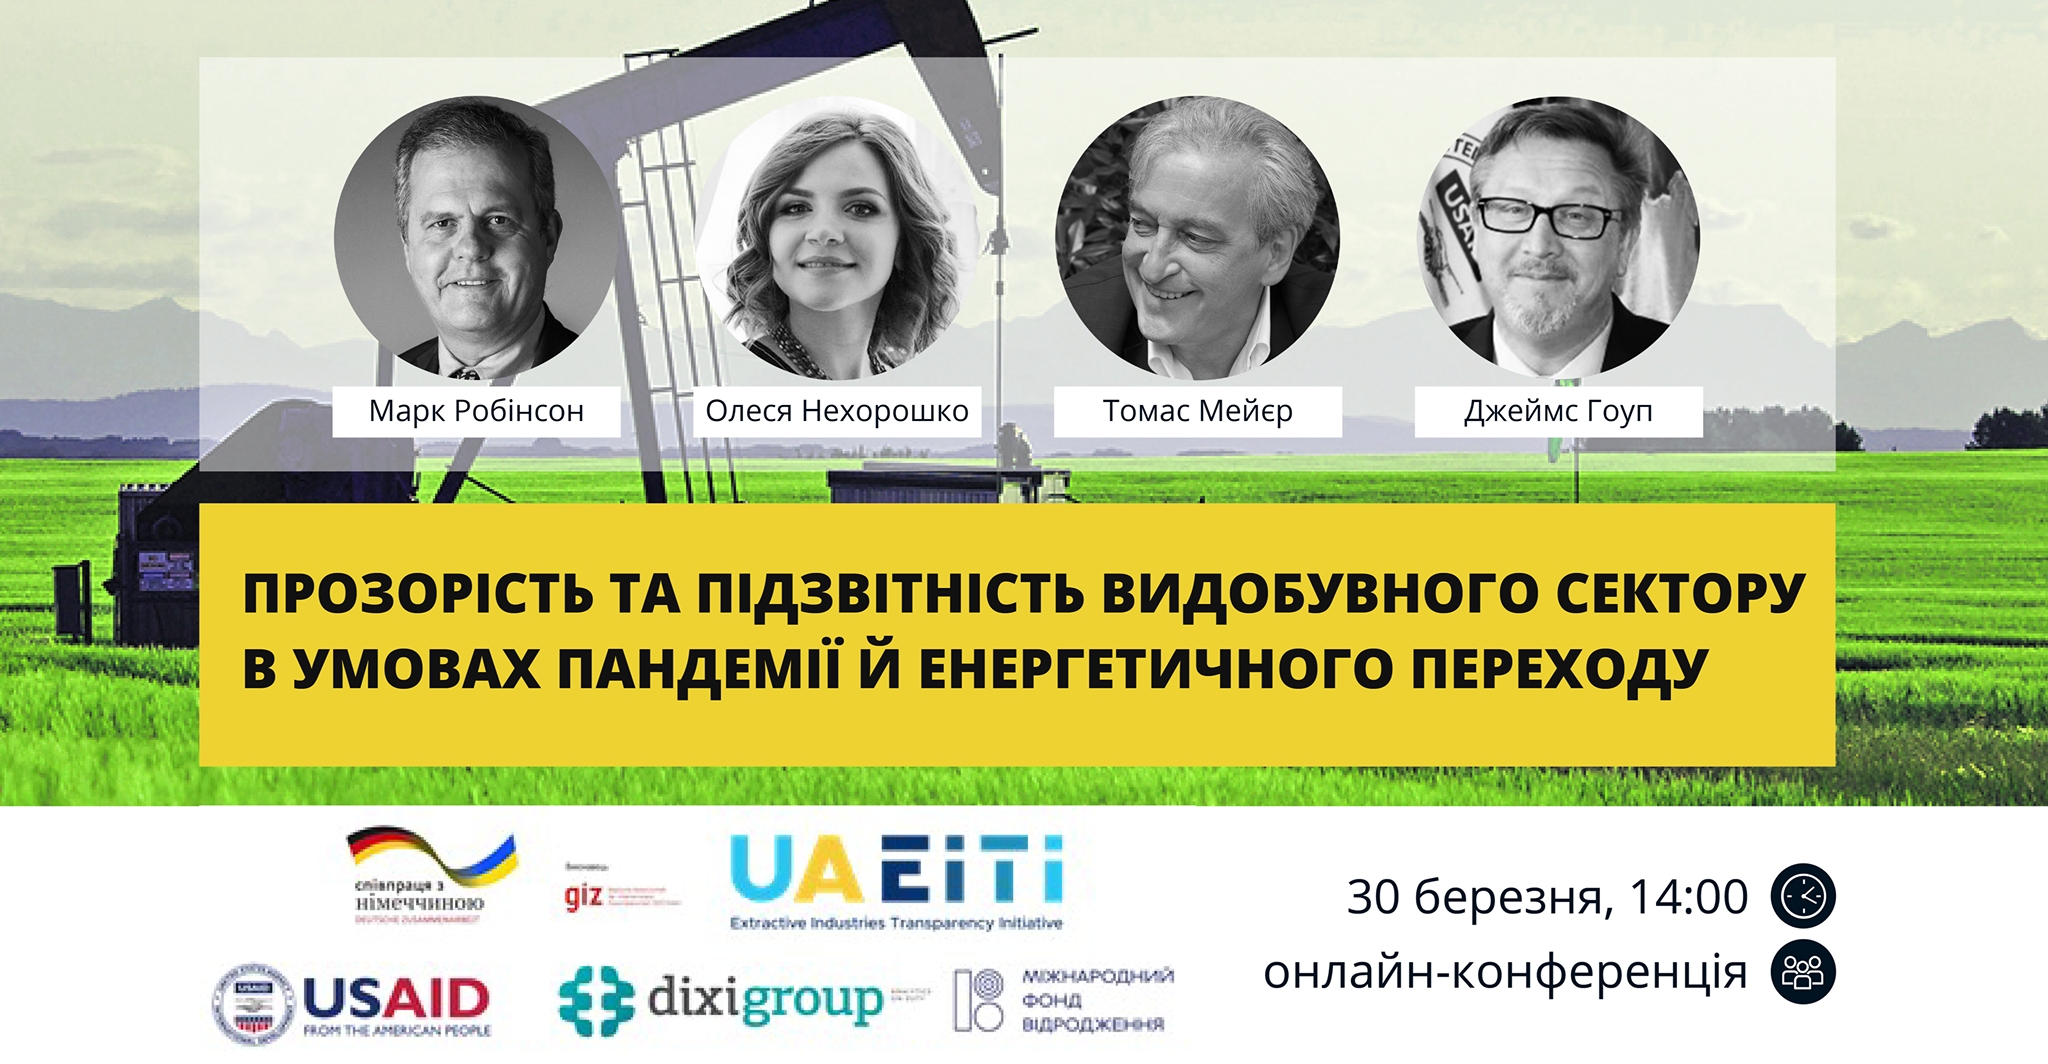 Online conference «Transparency and accountability of extractive sector during pandemic and energy transition»